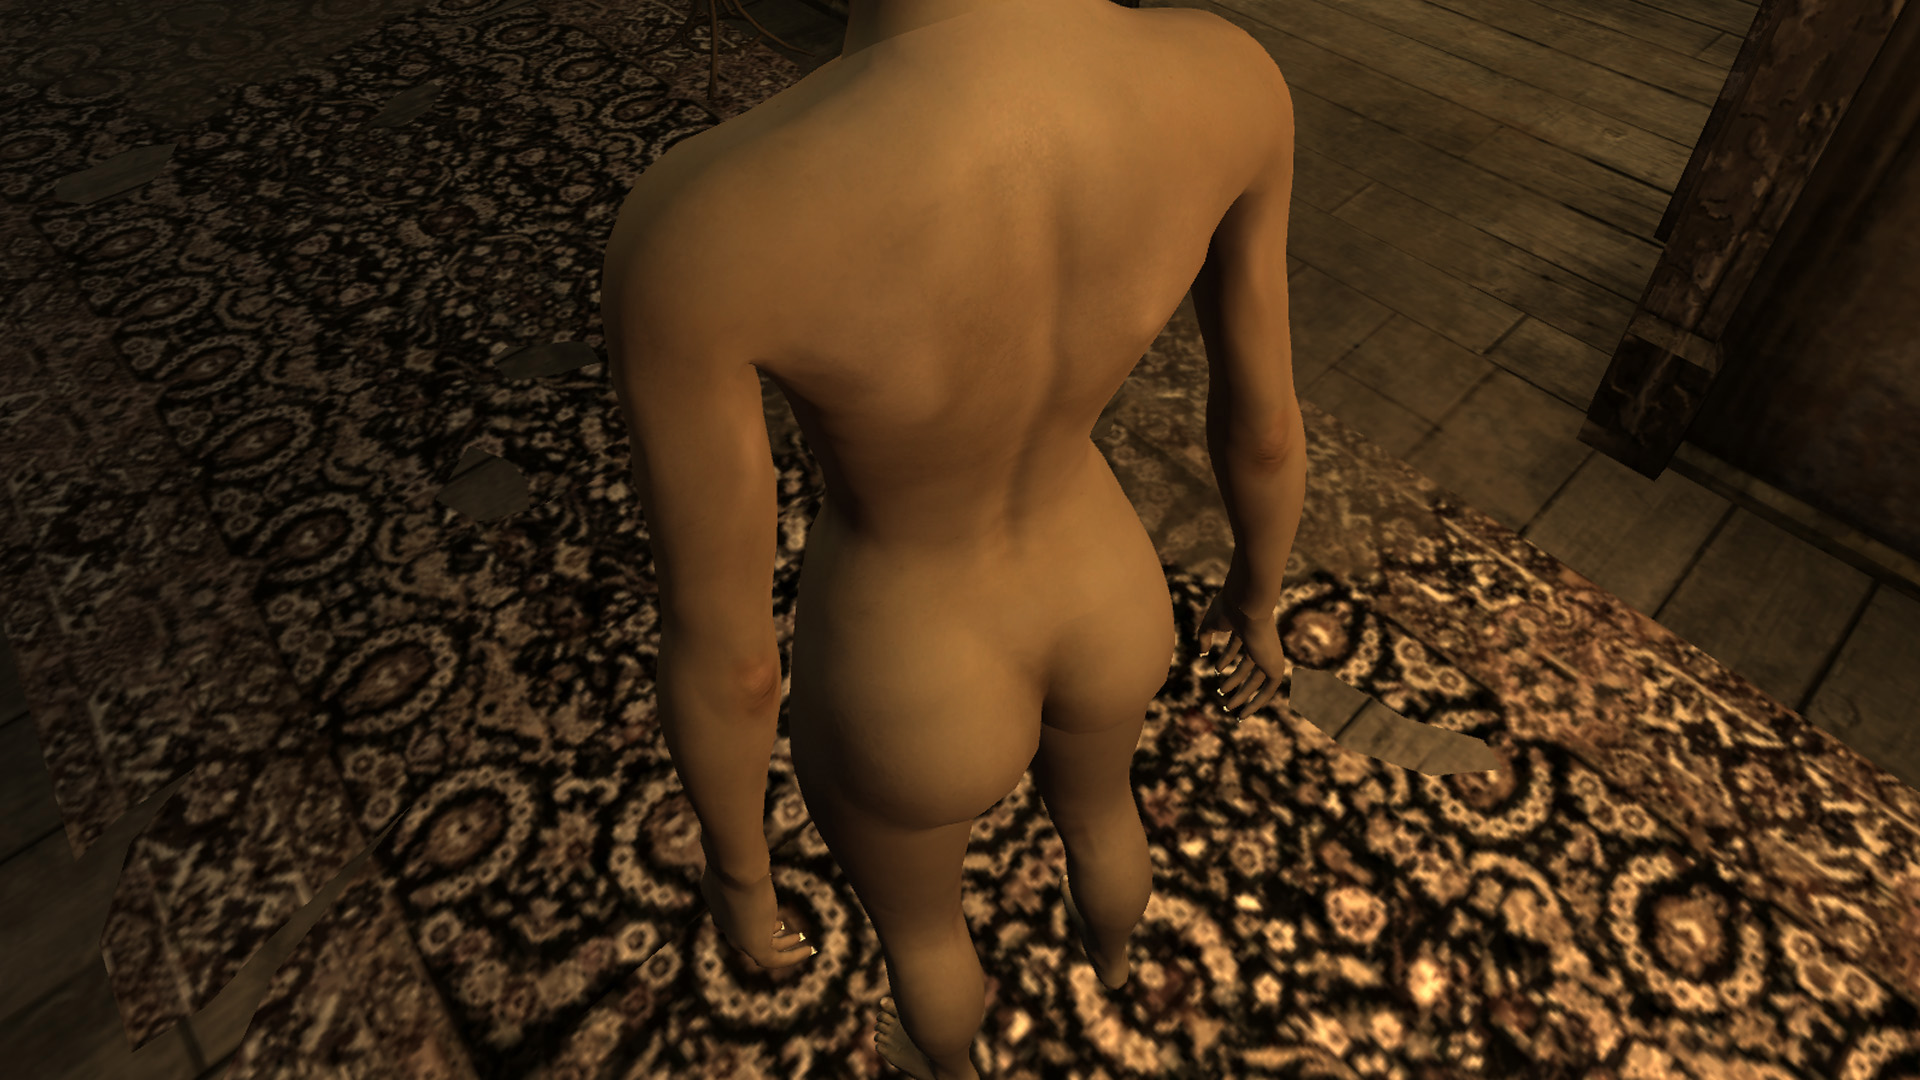 Fallout 3 the nude patch sexual film